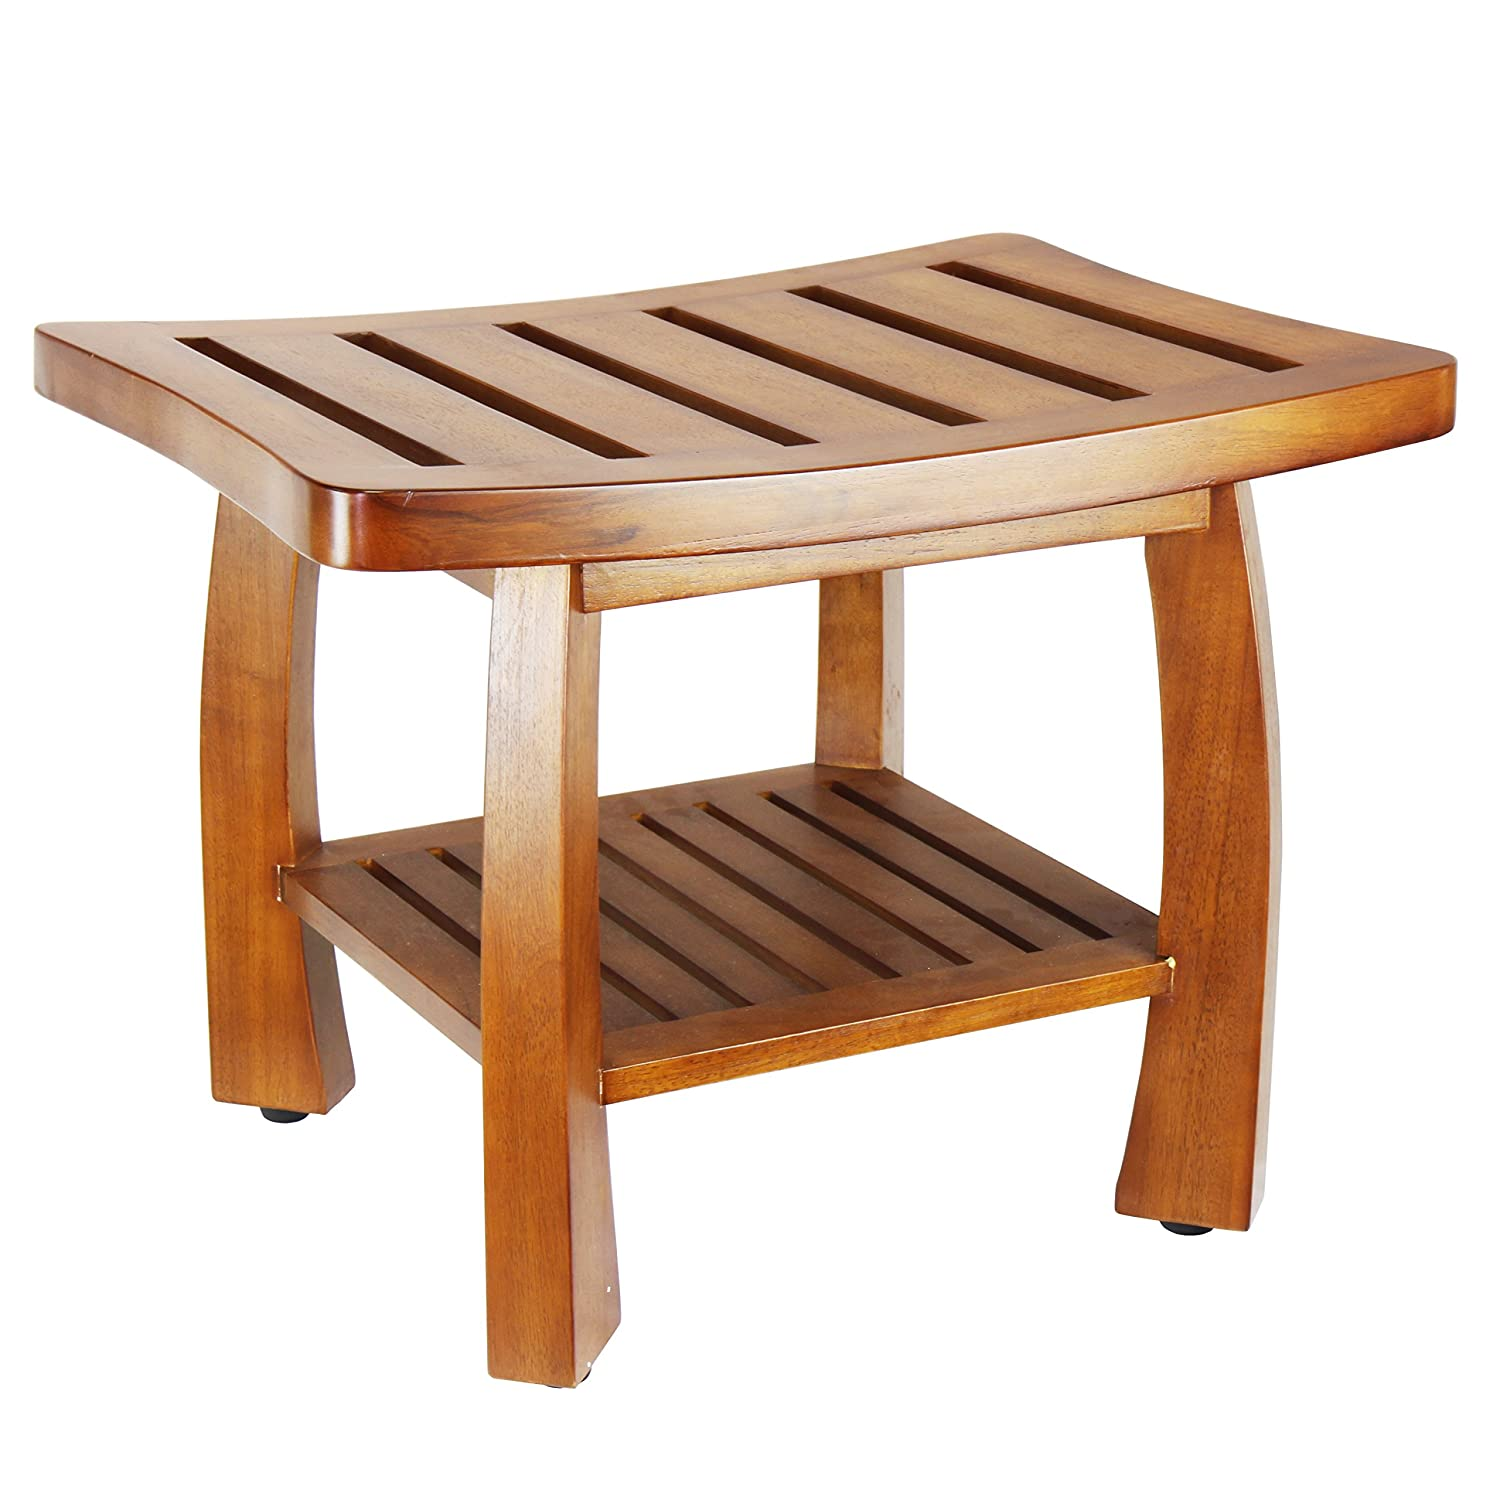 Floor stool bathroom solid teak wood portable spa bench furniture shower seat ebay Bath bench